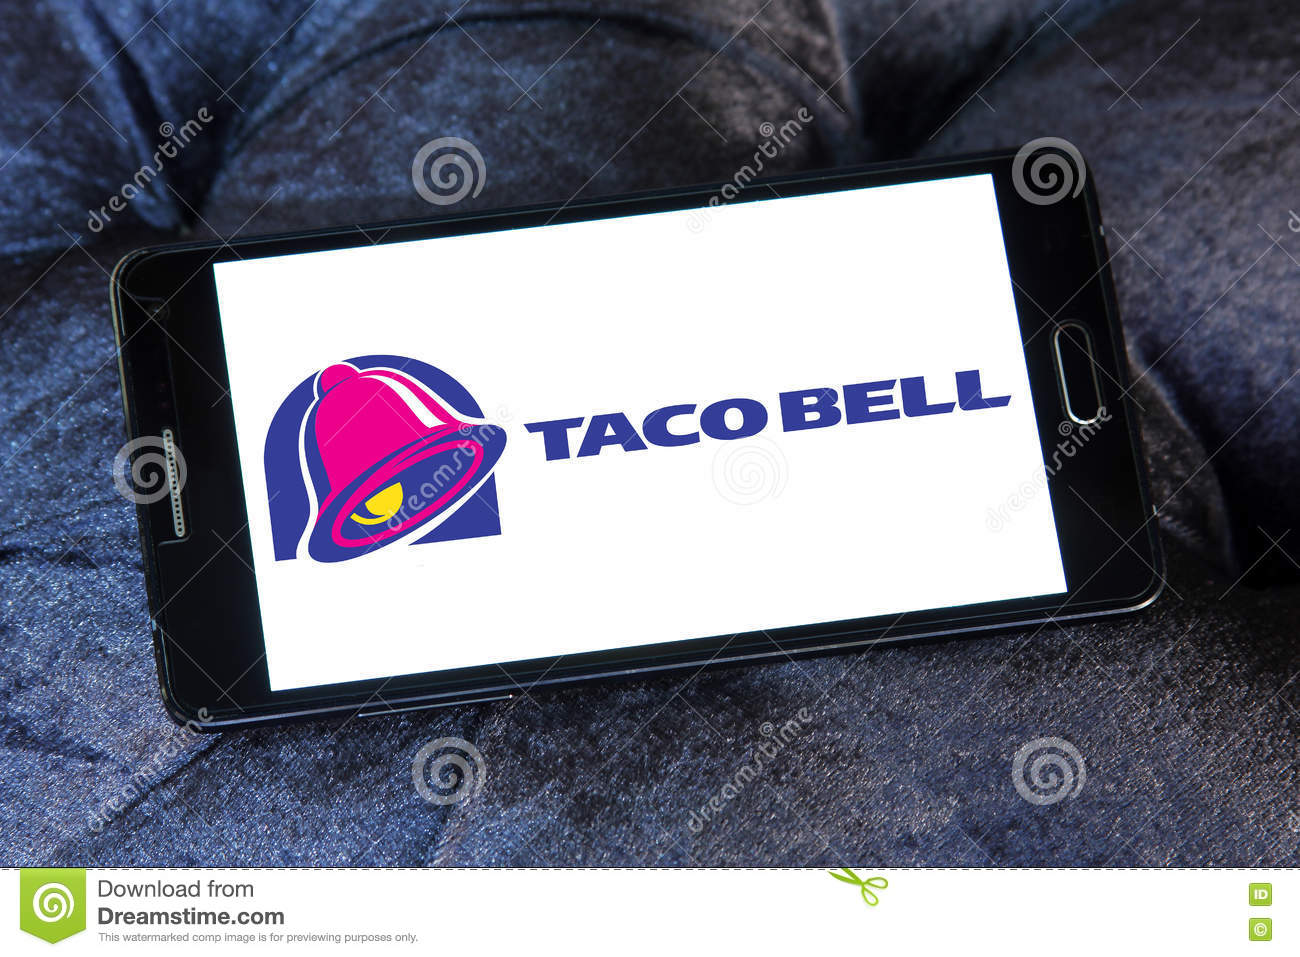 Taco bell fast food logo editorial stock image  Image of